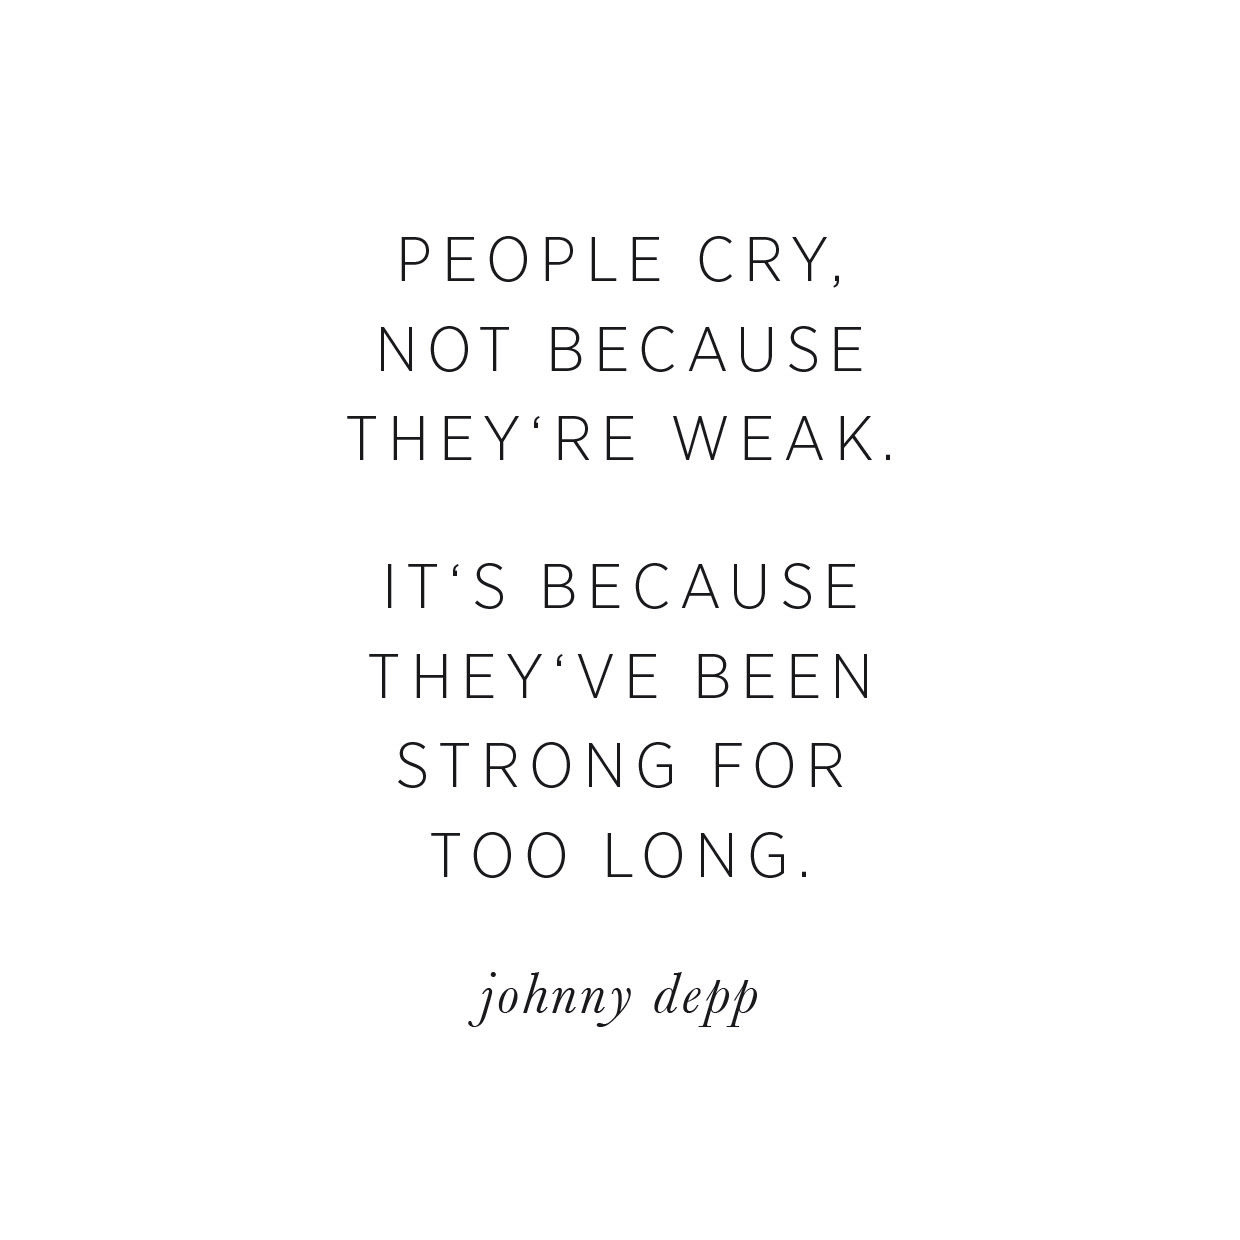 People Cry Not Because They Re Weak It S Because They Ve Been Strong For Too Long Graphic Design By Louie Www Fb Bad Day Quotes True Quotes Weakness Quotes